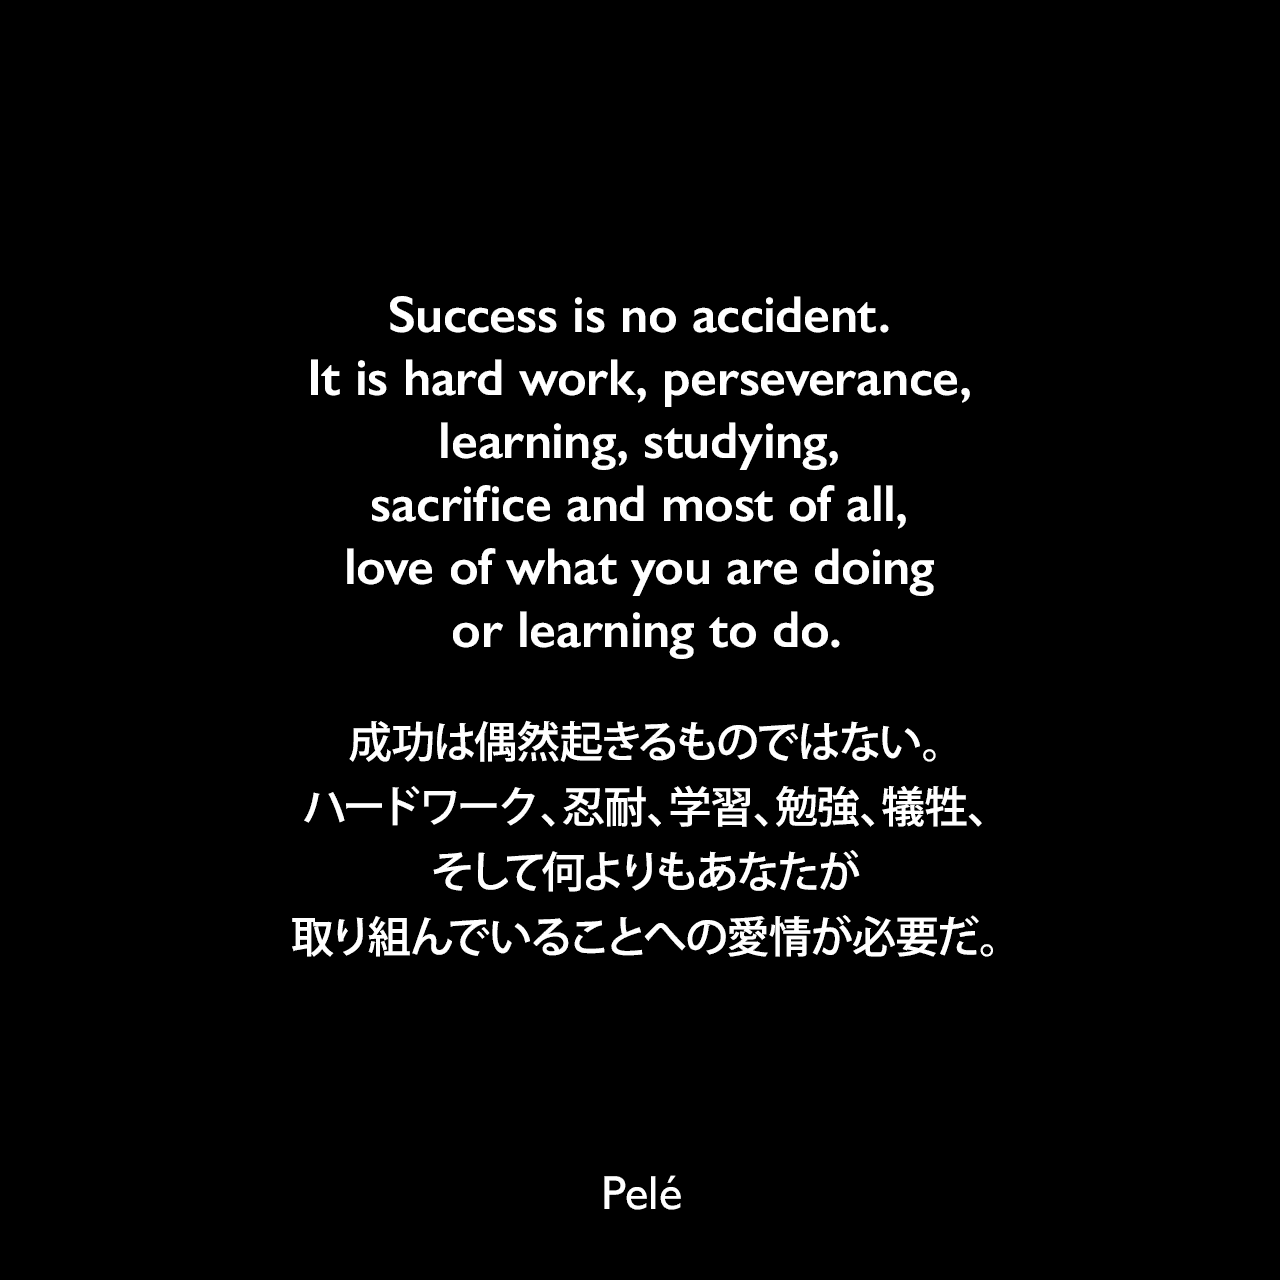 Success is no accident. It is hard work, perseverance, learning, studying, sacrifice and most of all, love of what you are doing or learning to do.成功は偶然起きるものではない。ハードワーク、忍耐、学習、勉強、犠牲、そして何よりもあなたが取り組んでいることへの愛情が必要だ。